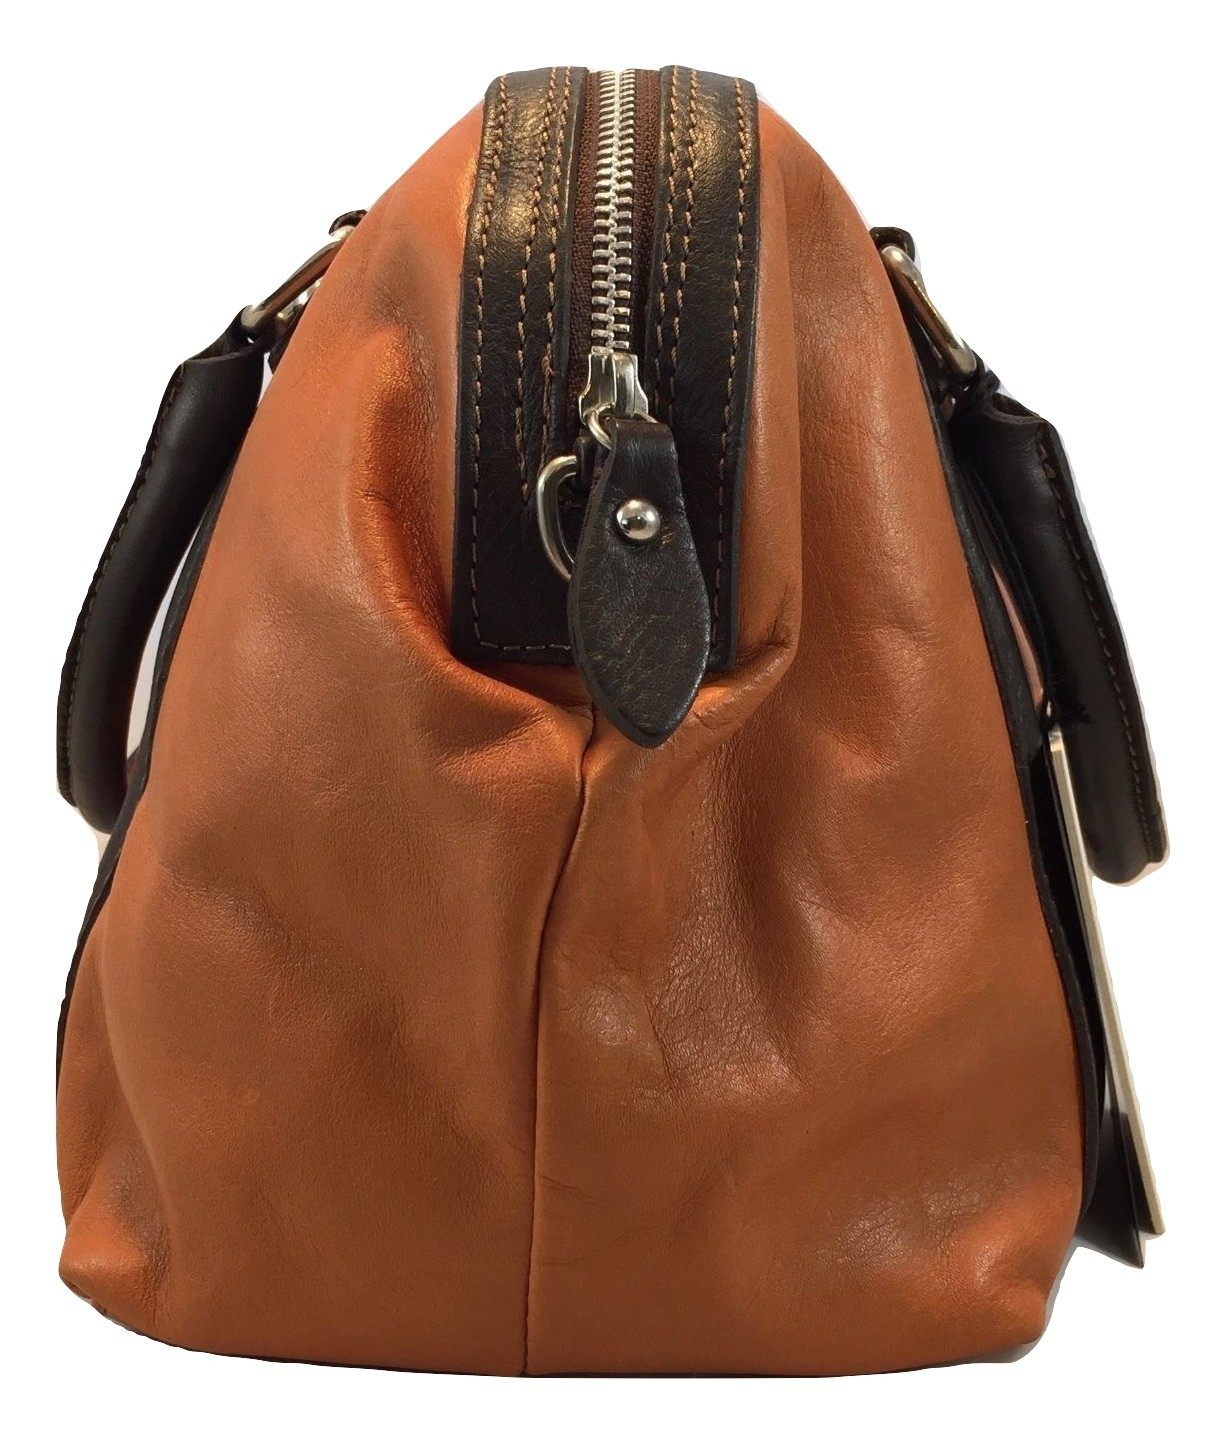 New Made in Italy Two Tone Brown and Tan Italian Leather Satchel Handbag Purse